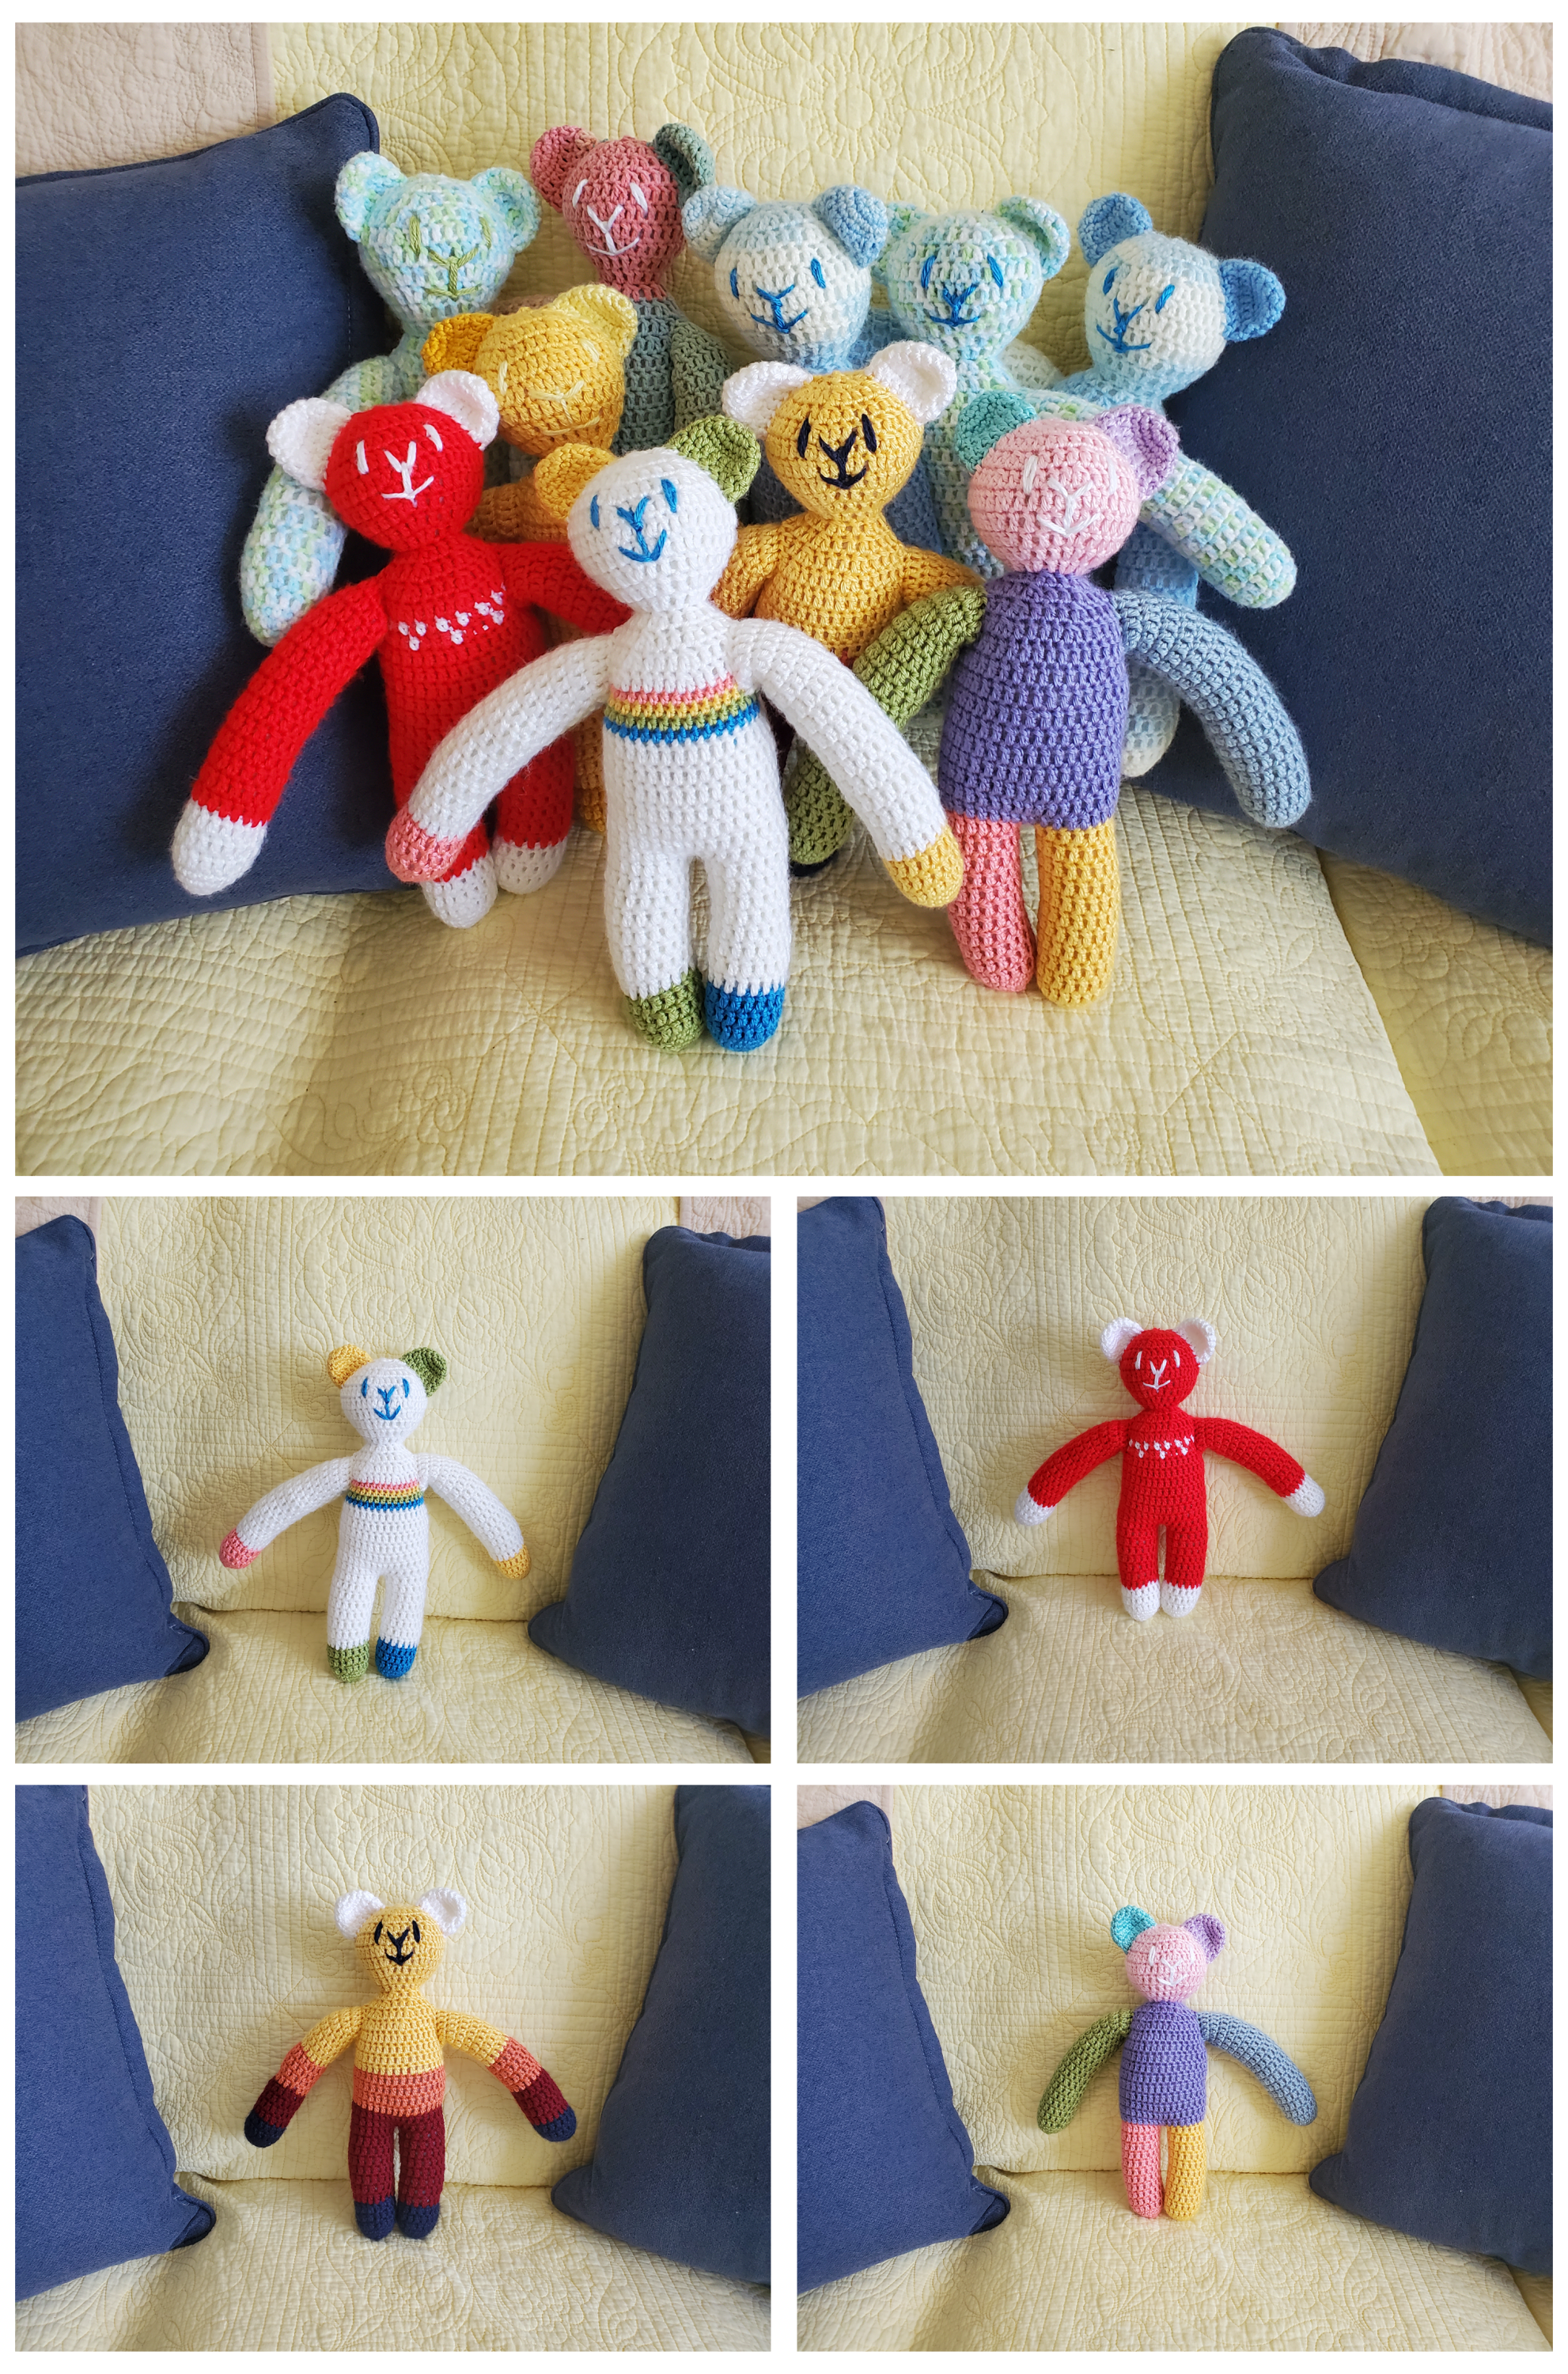 A photo of a group of ten crocheted teddy bears with slightly-too-long arms on the yellow fabric background with two blue throw pillows next to them. They all have a simple smiling expression on their faces made with contrasting yarns. Below this image ar